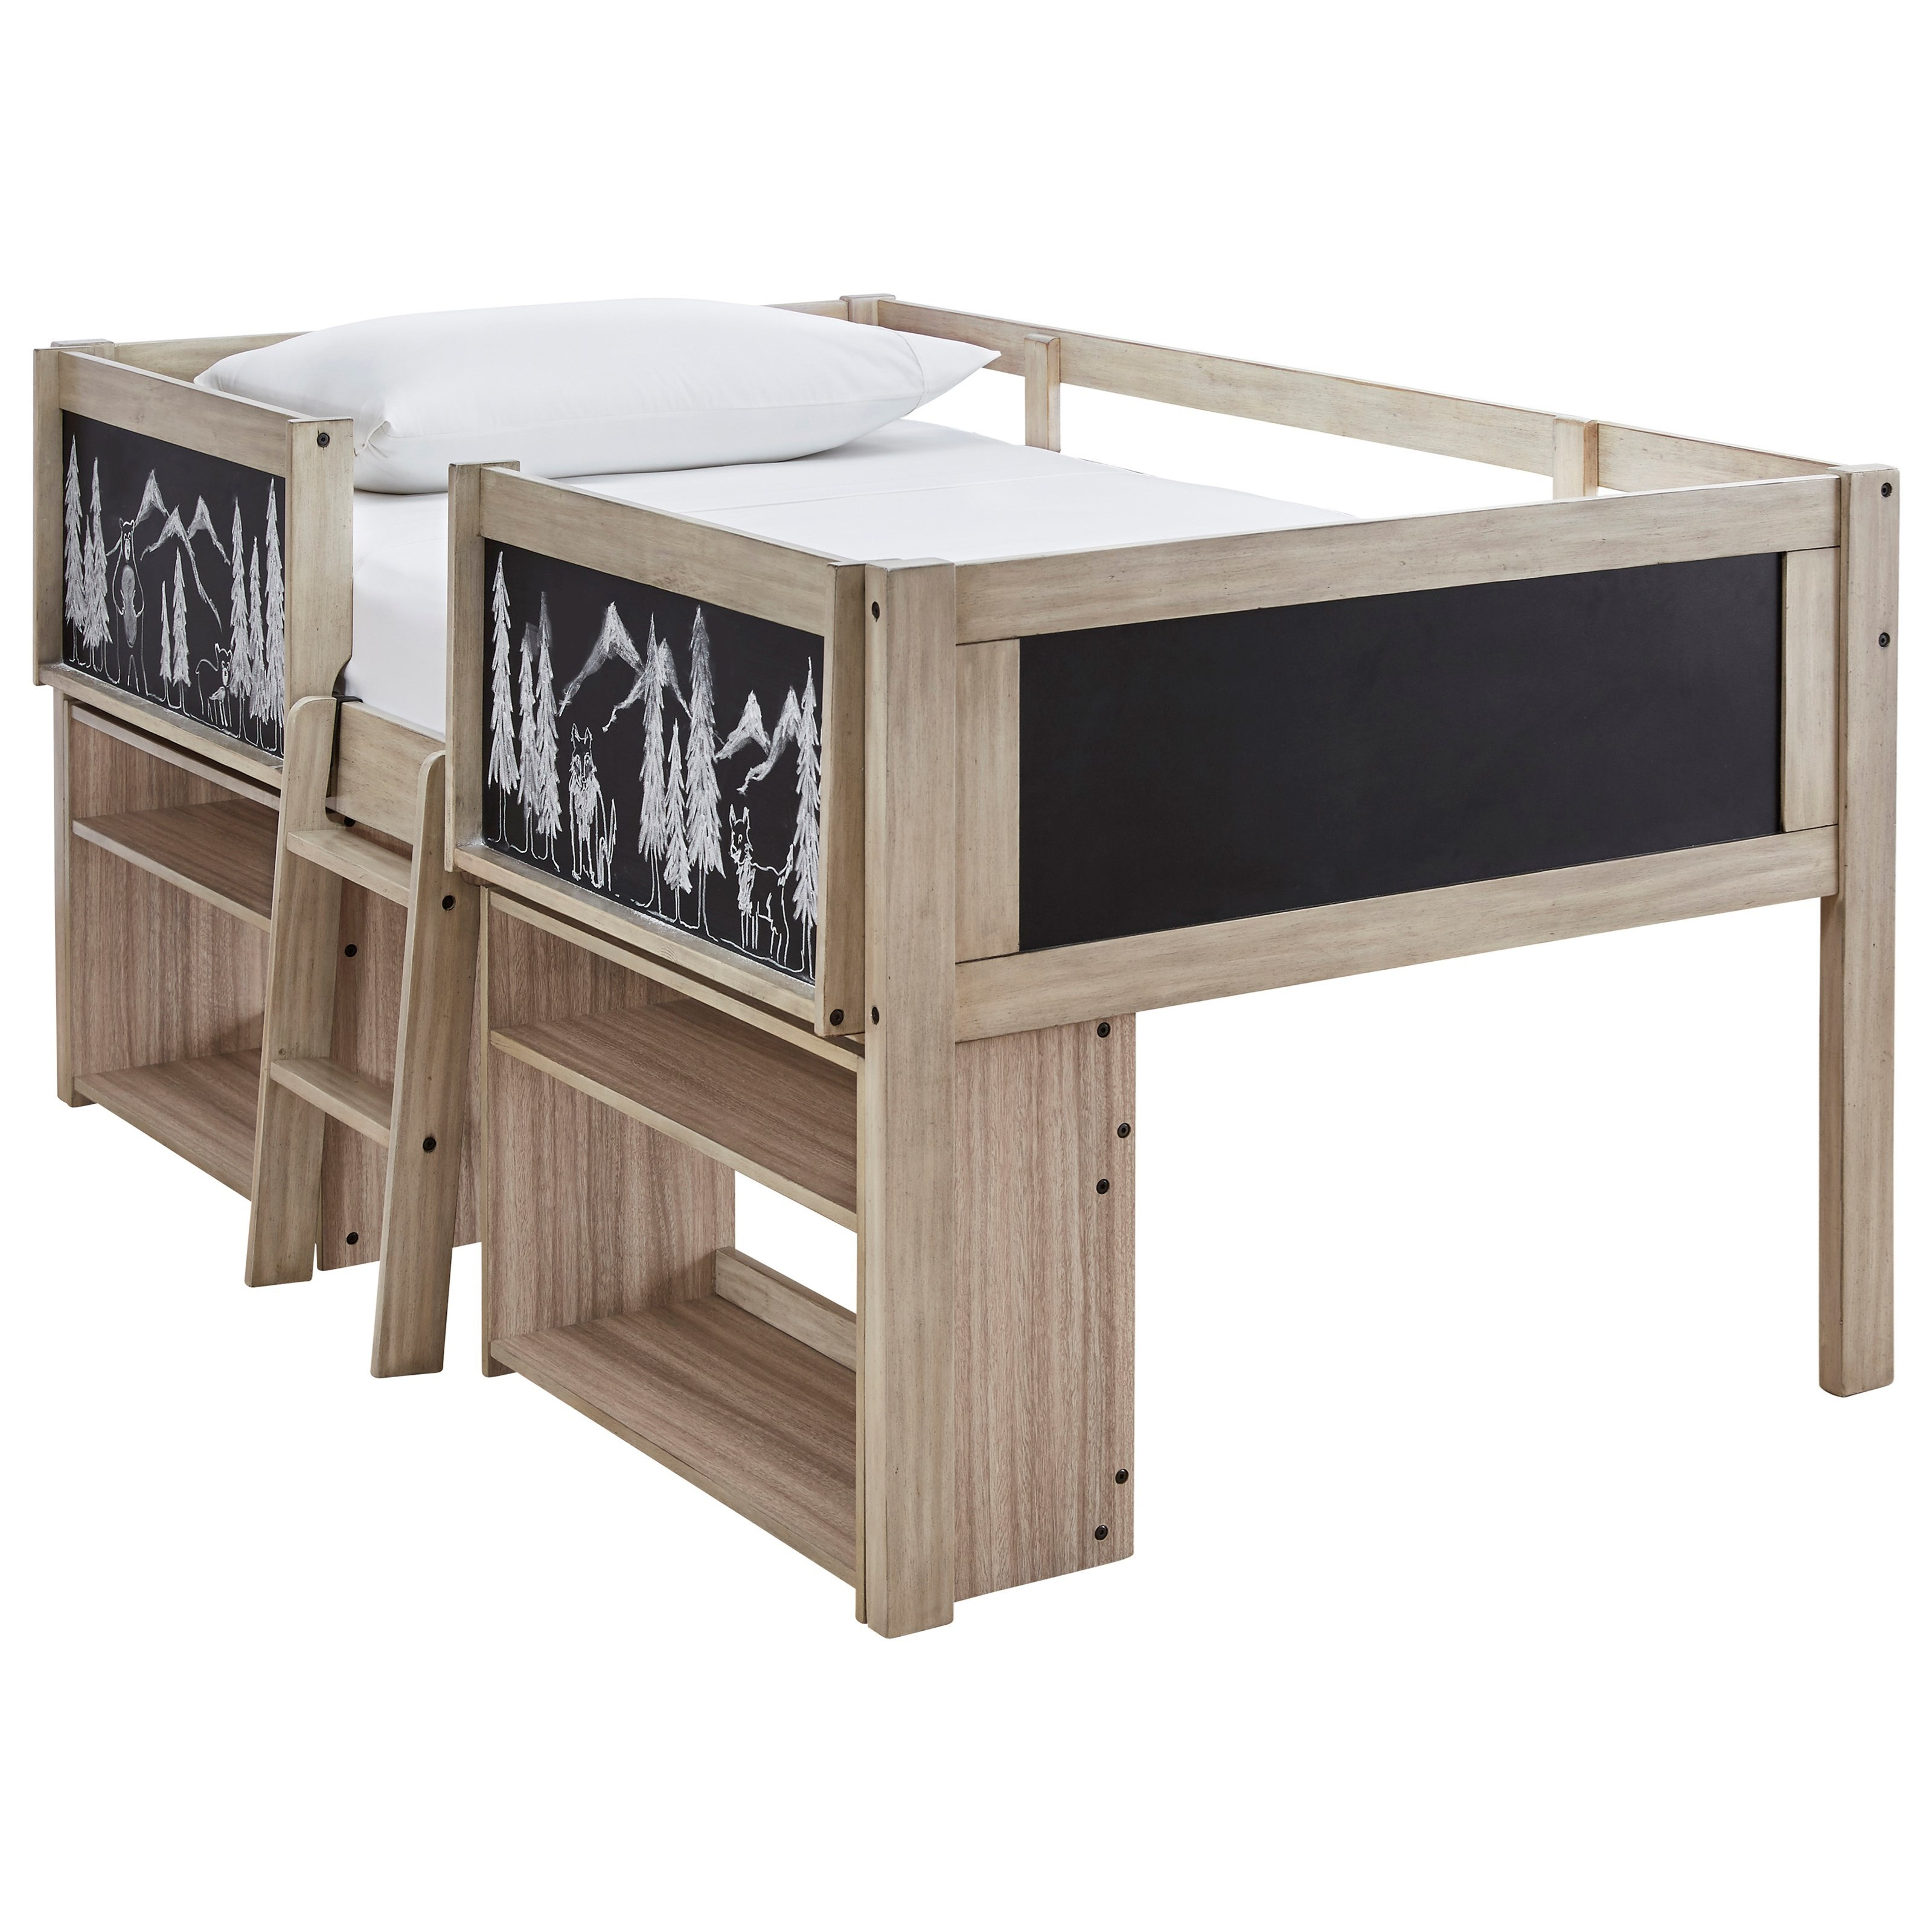 Wrenalyn Twin Loft Bed Frame with Under Bed Bookcases by Ashley (Signature Design) at Johnny Janosik